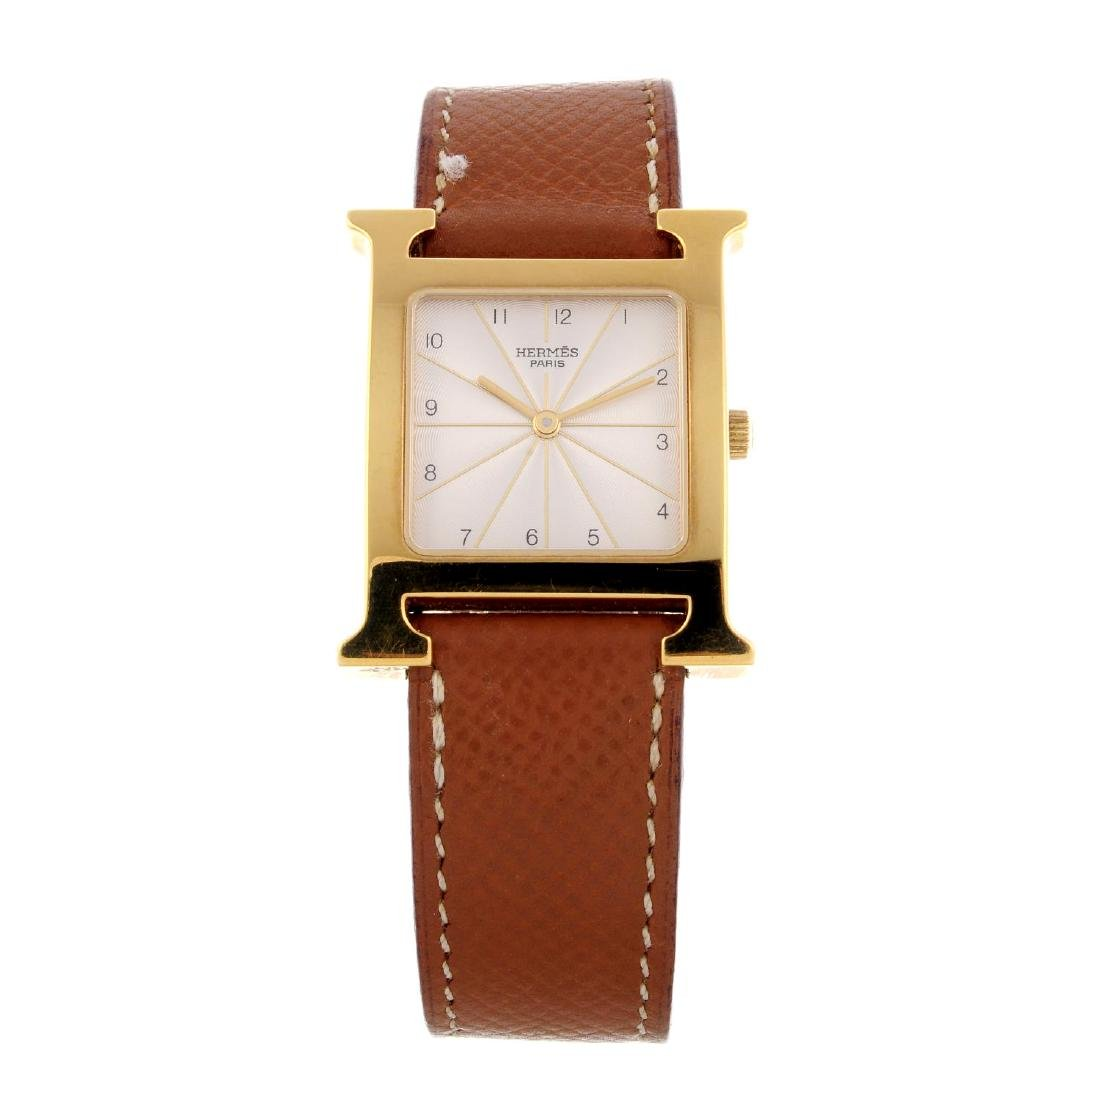 HERMÈS - a Heure H wrist watch. Gold plated case with